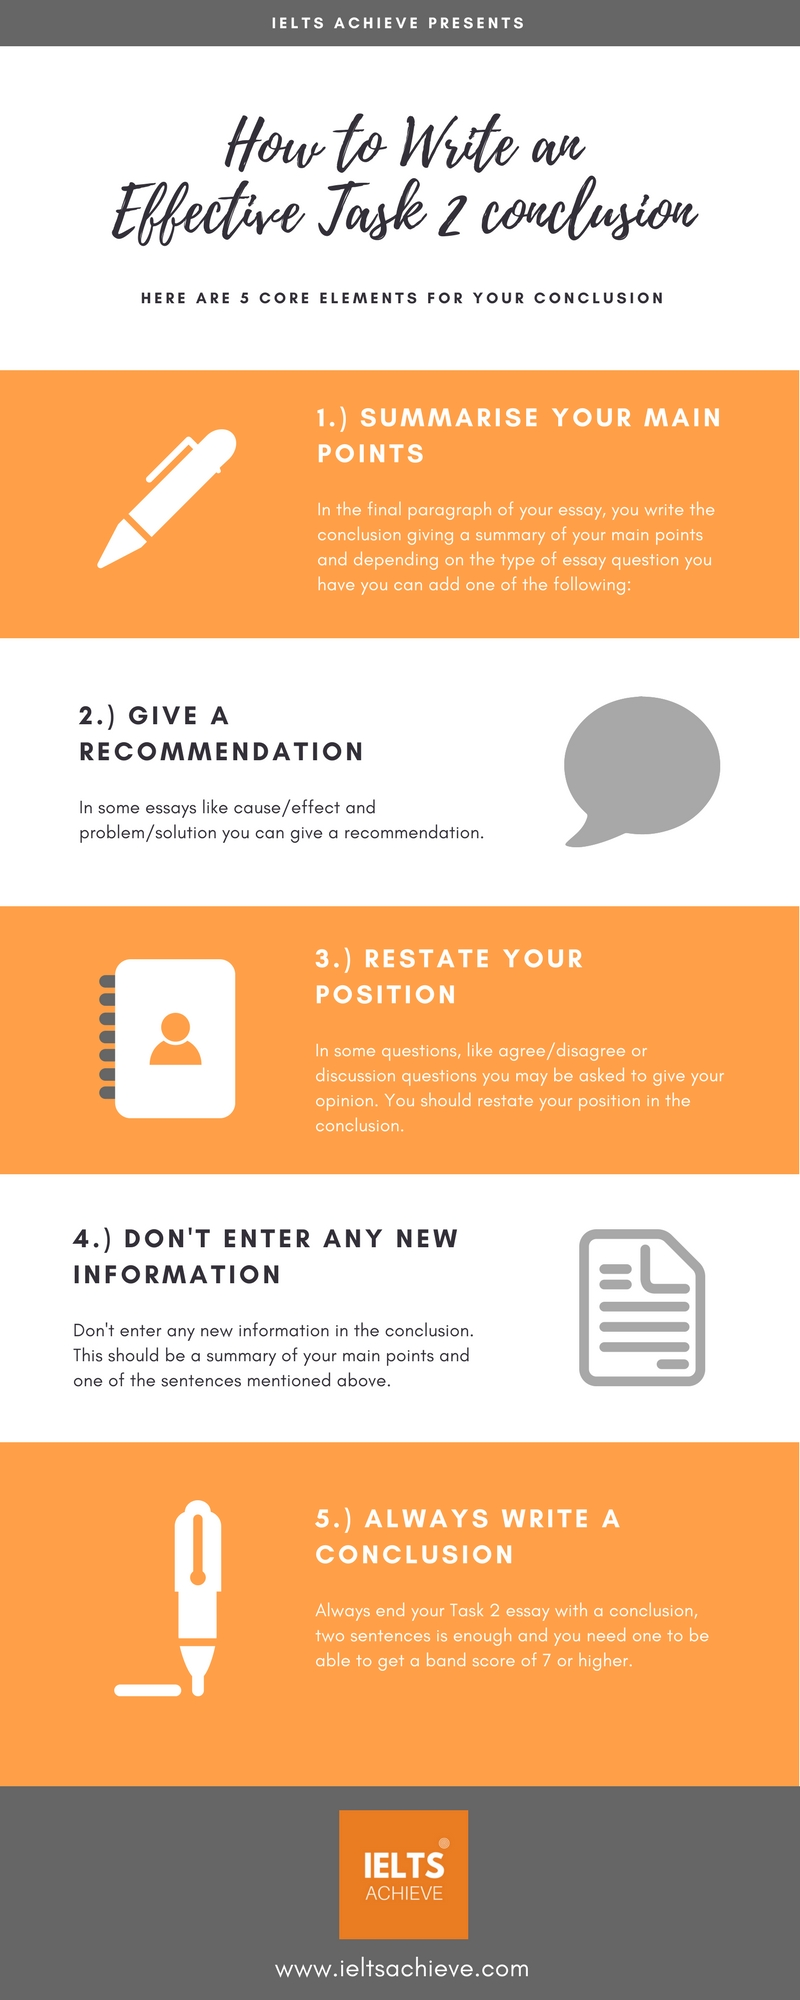 how to write an effective task 2 conclusion